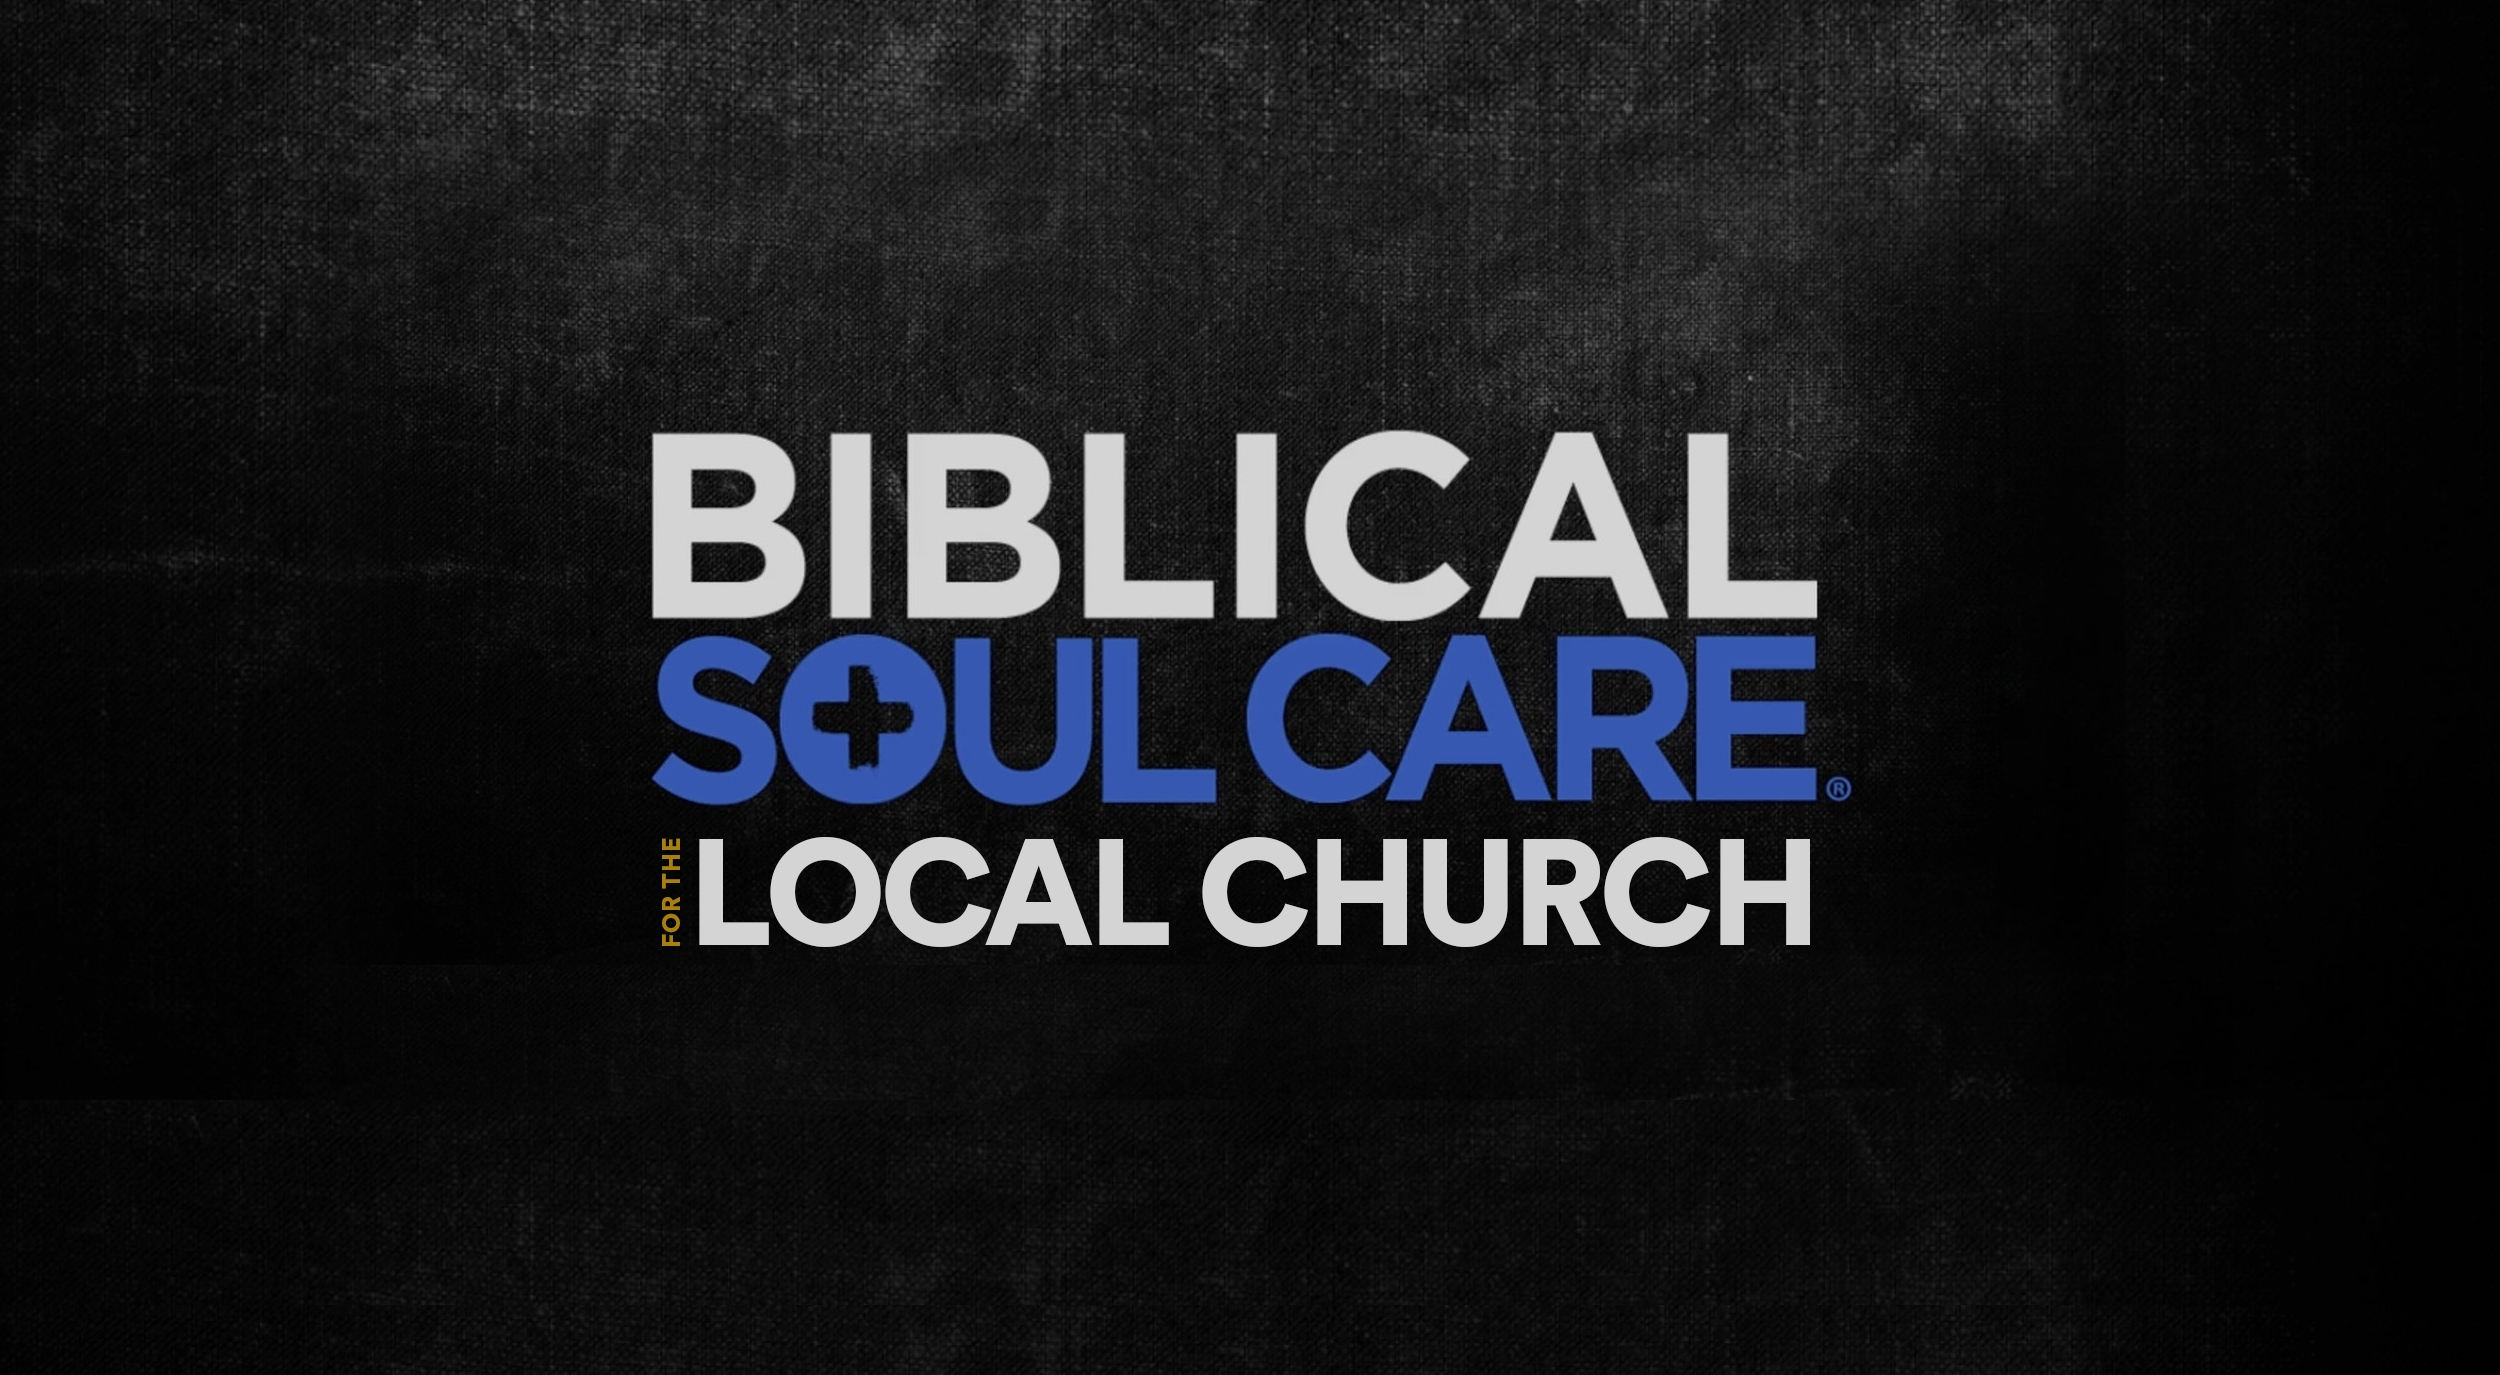 BSC-LocalChurch-Featured.jpg